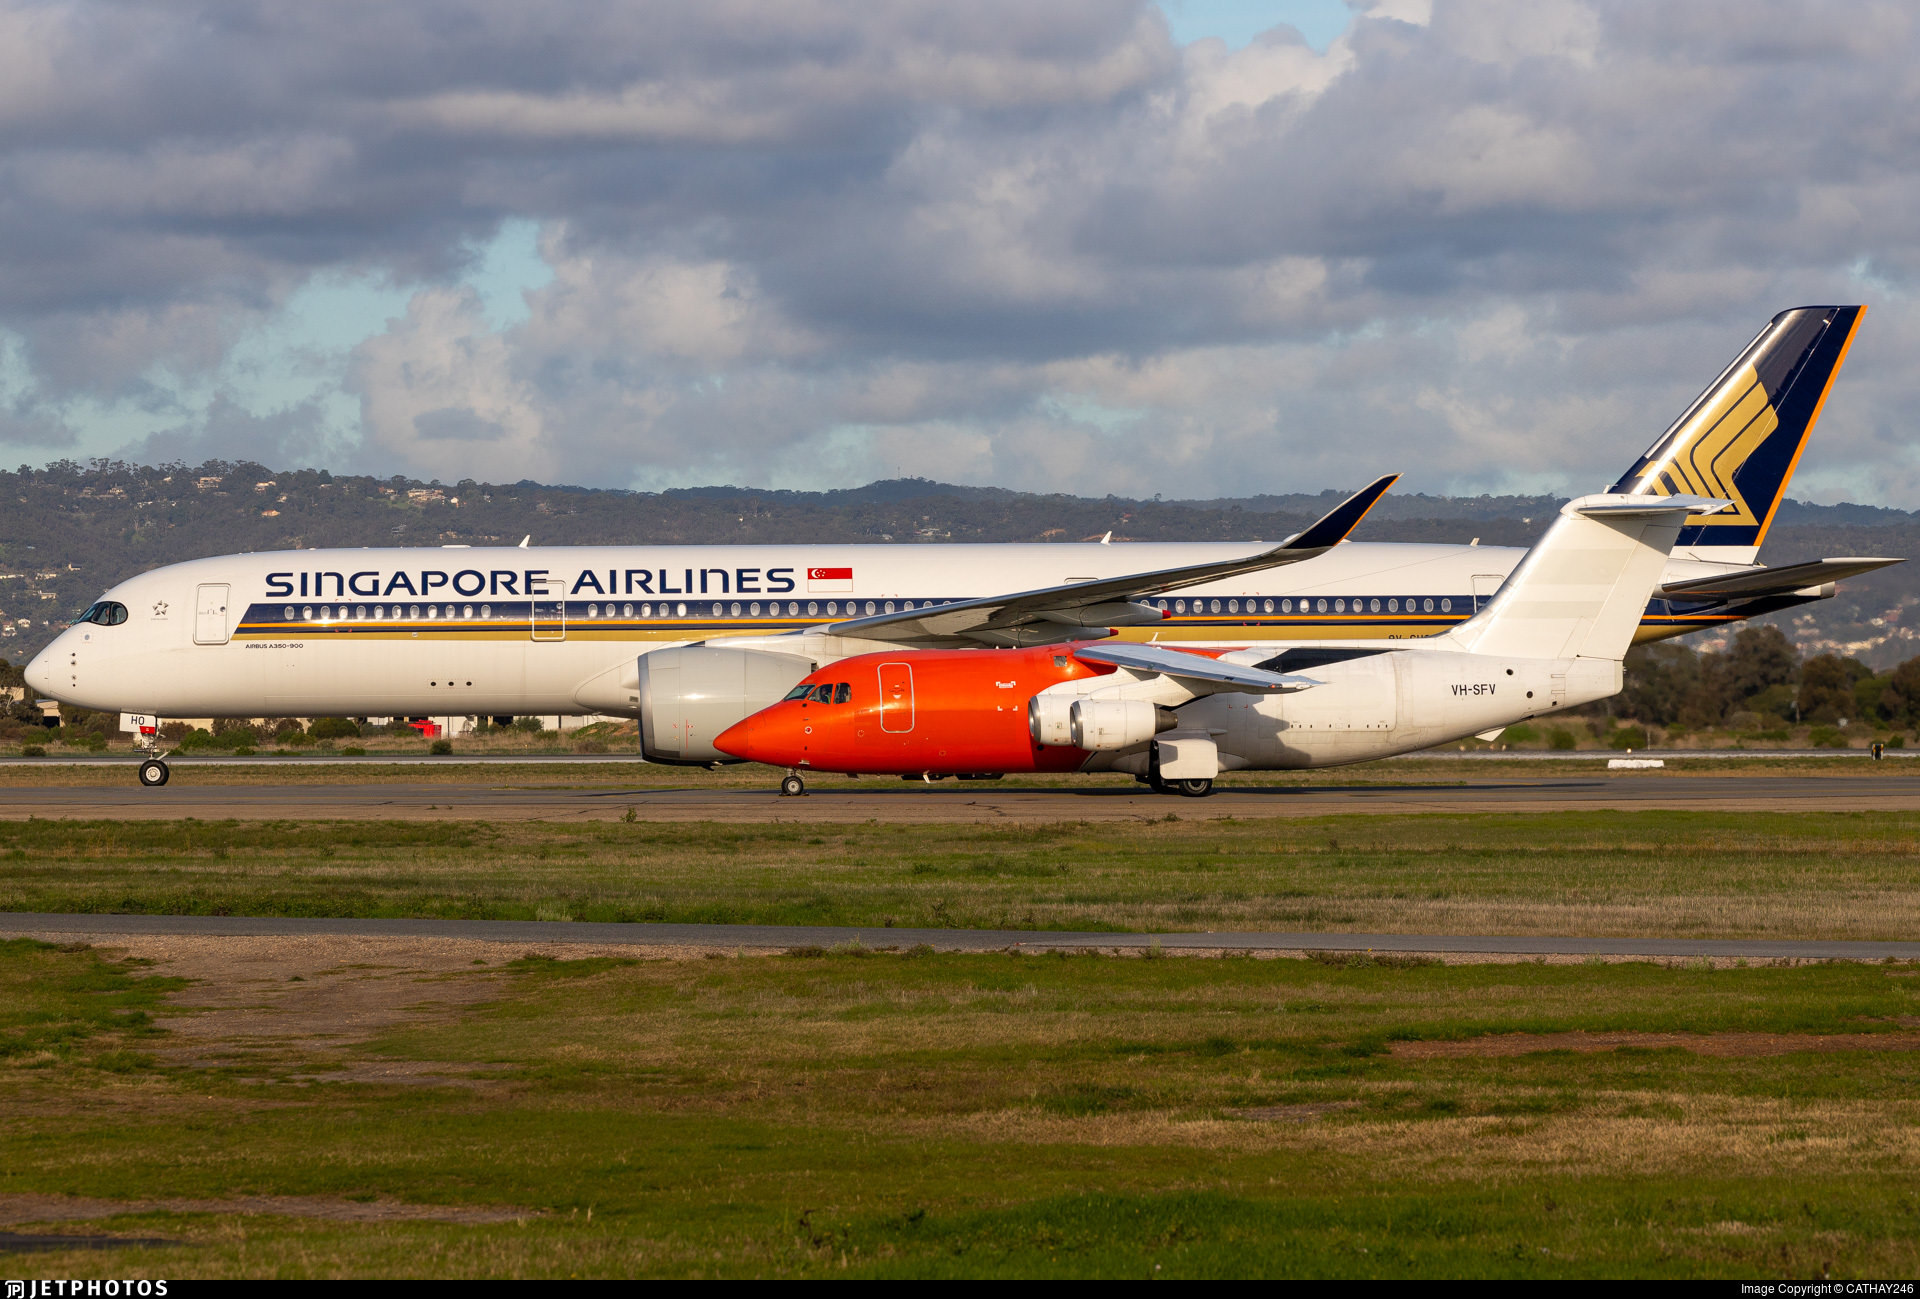 A Singapore Airlines A350 and Pionair BAe-146 side by side